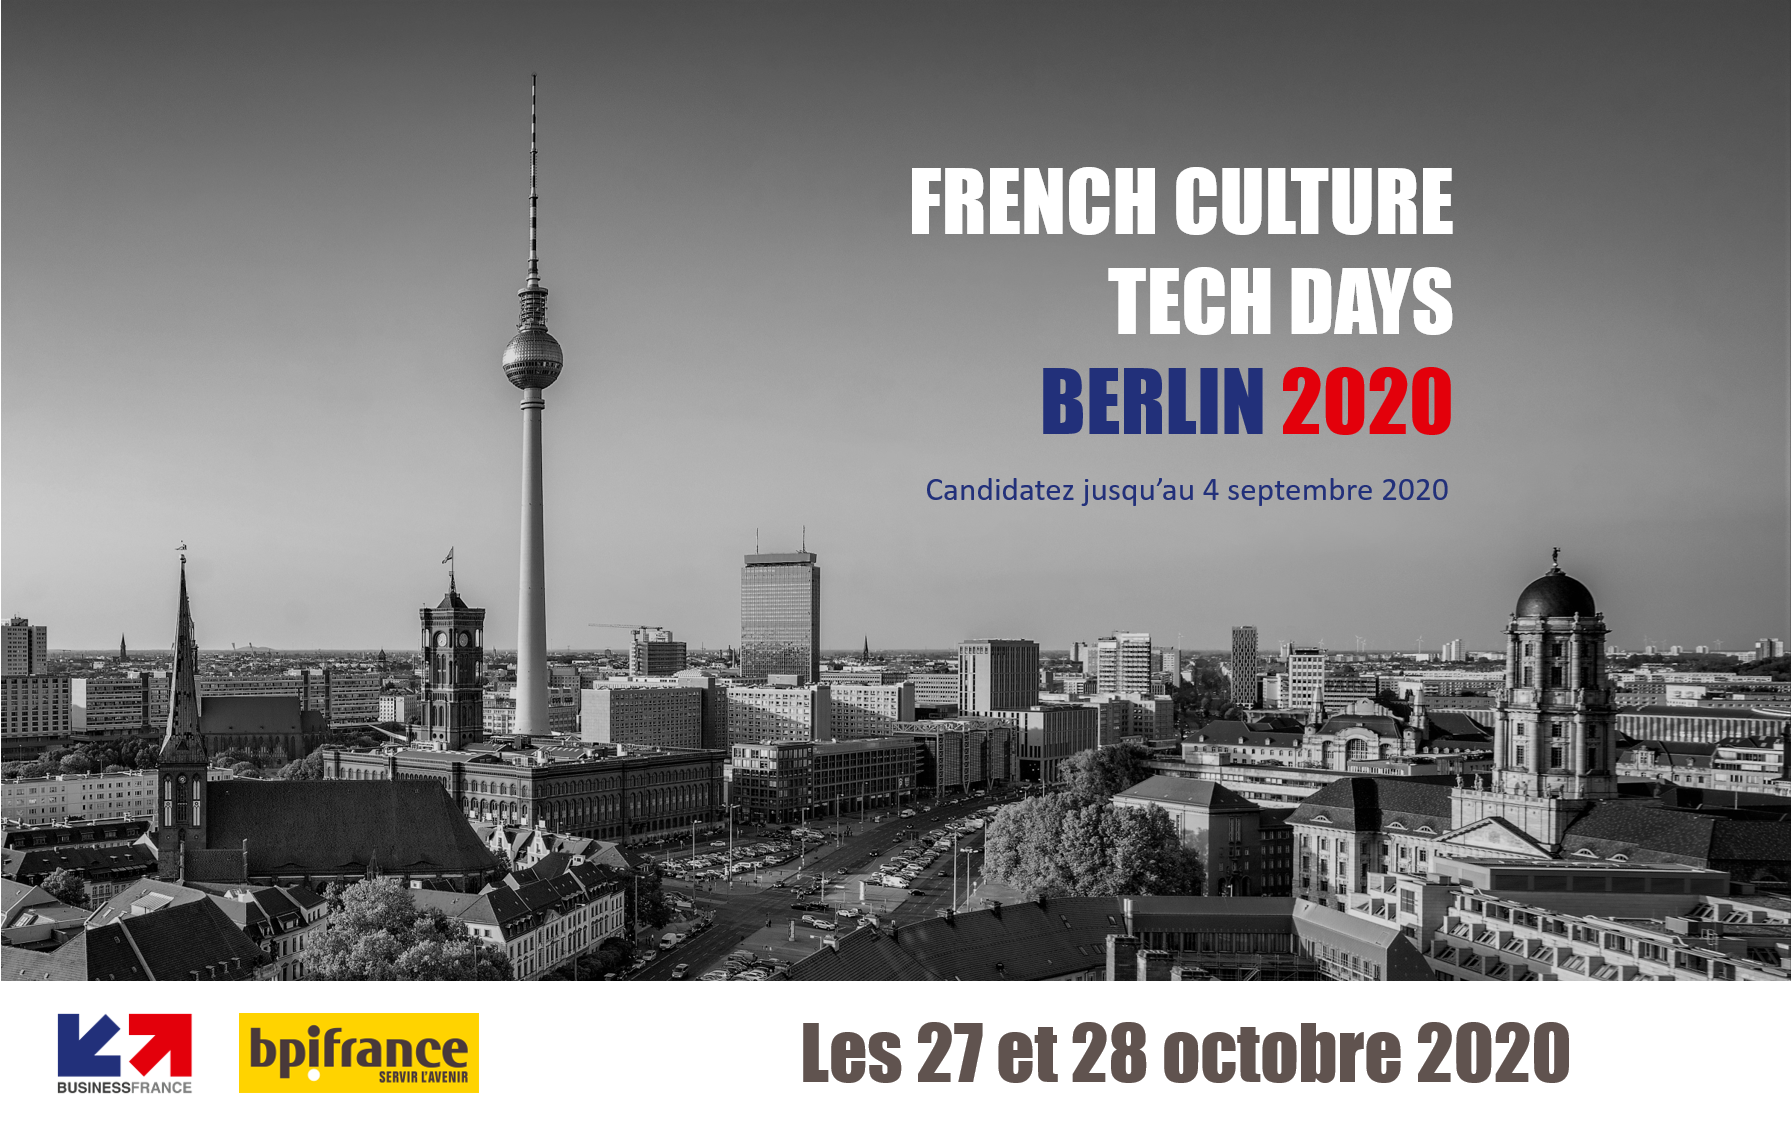 French Culture Tech Days Germany Berlin 2020 – Candidatez avant le 4 septembre